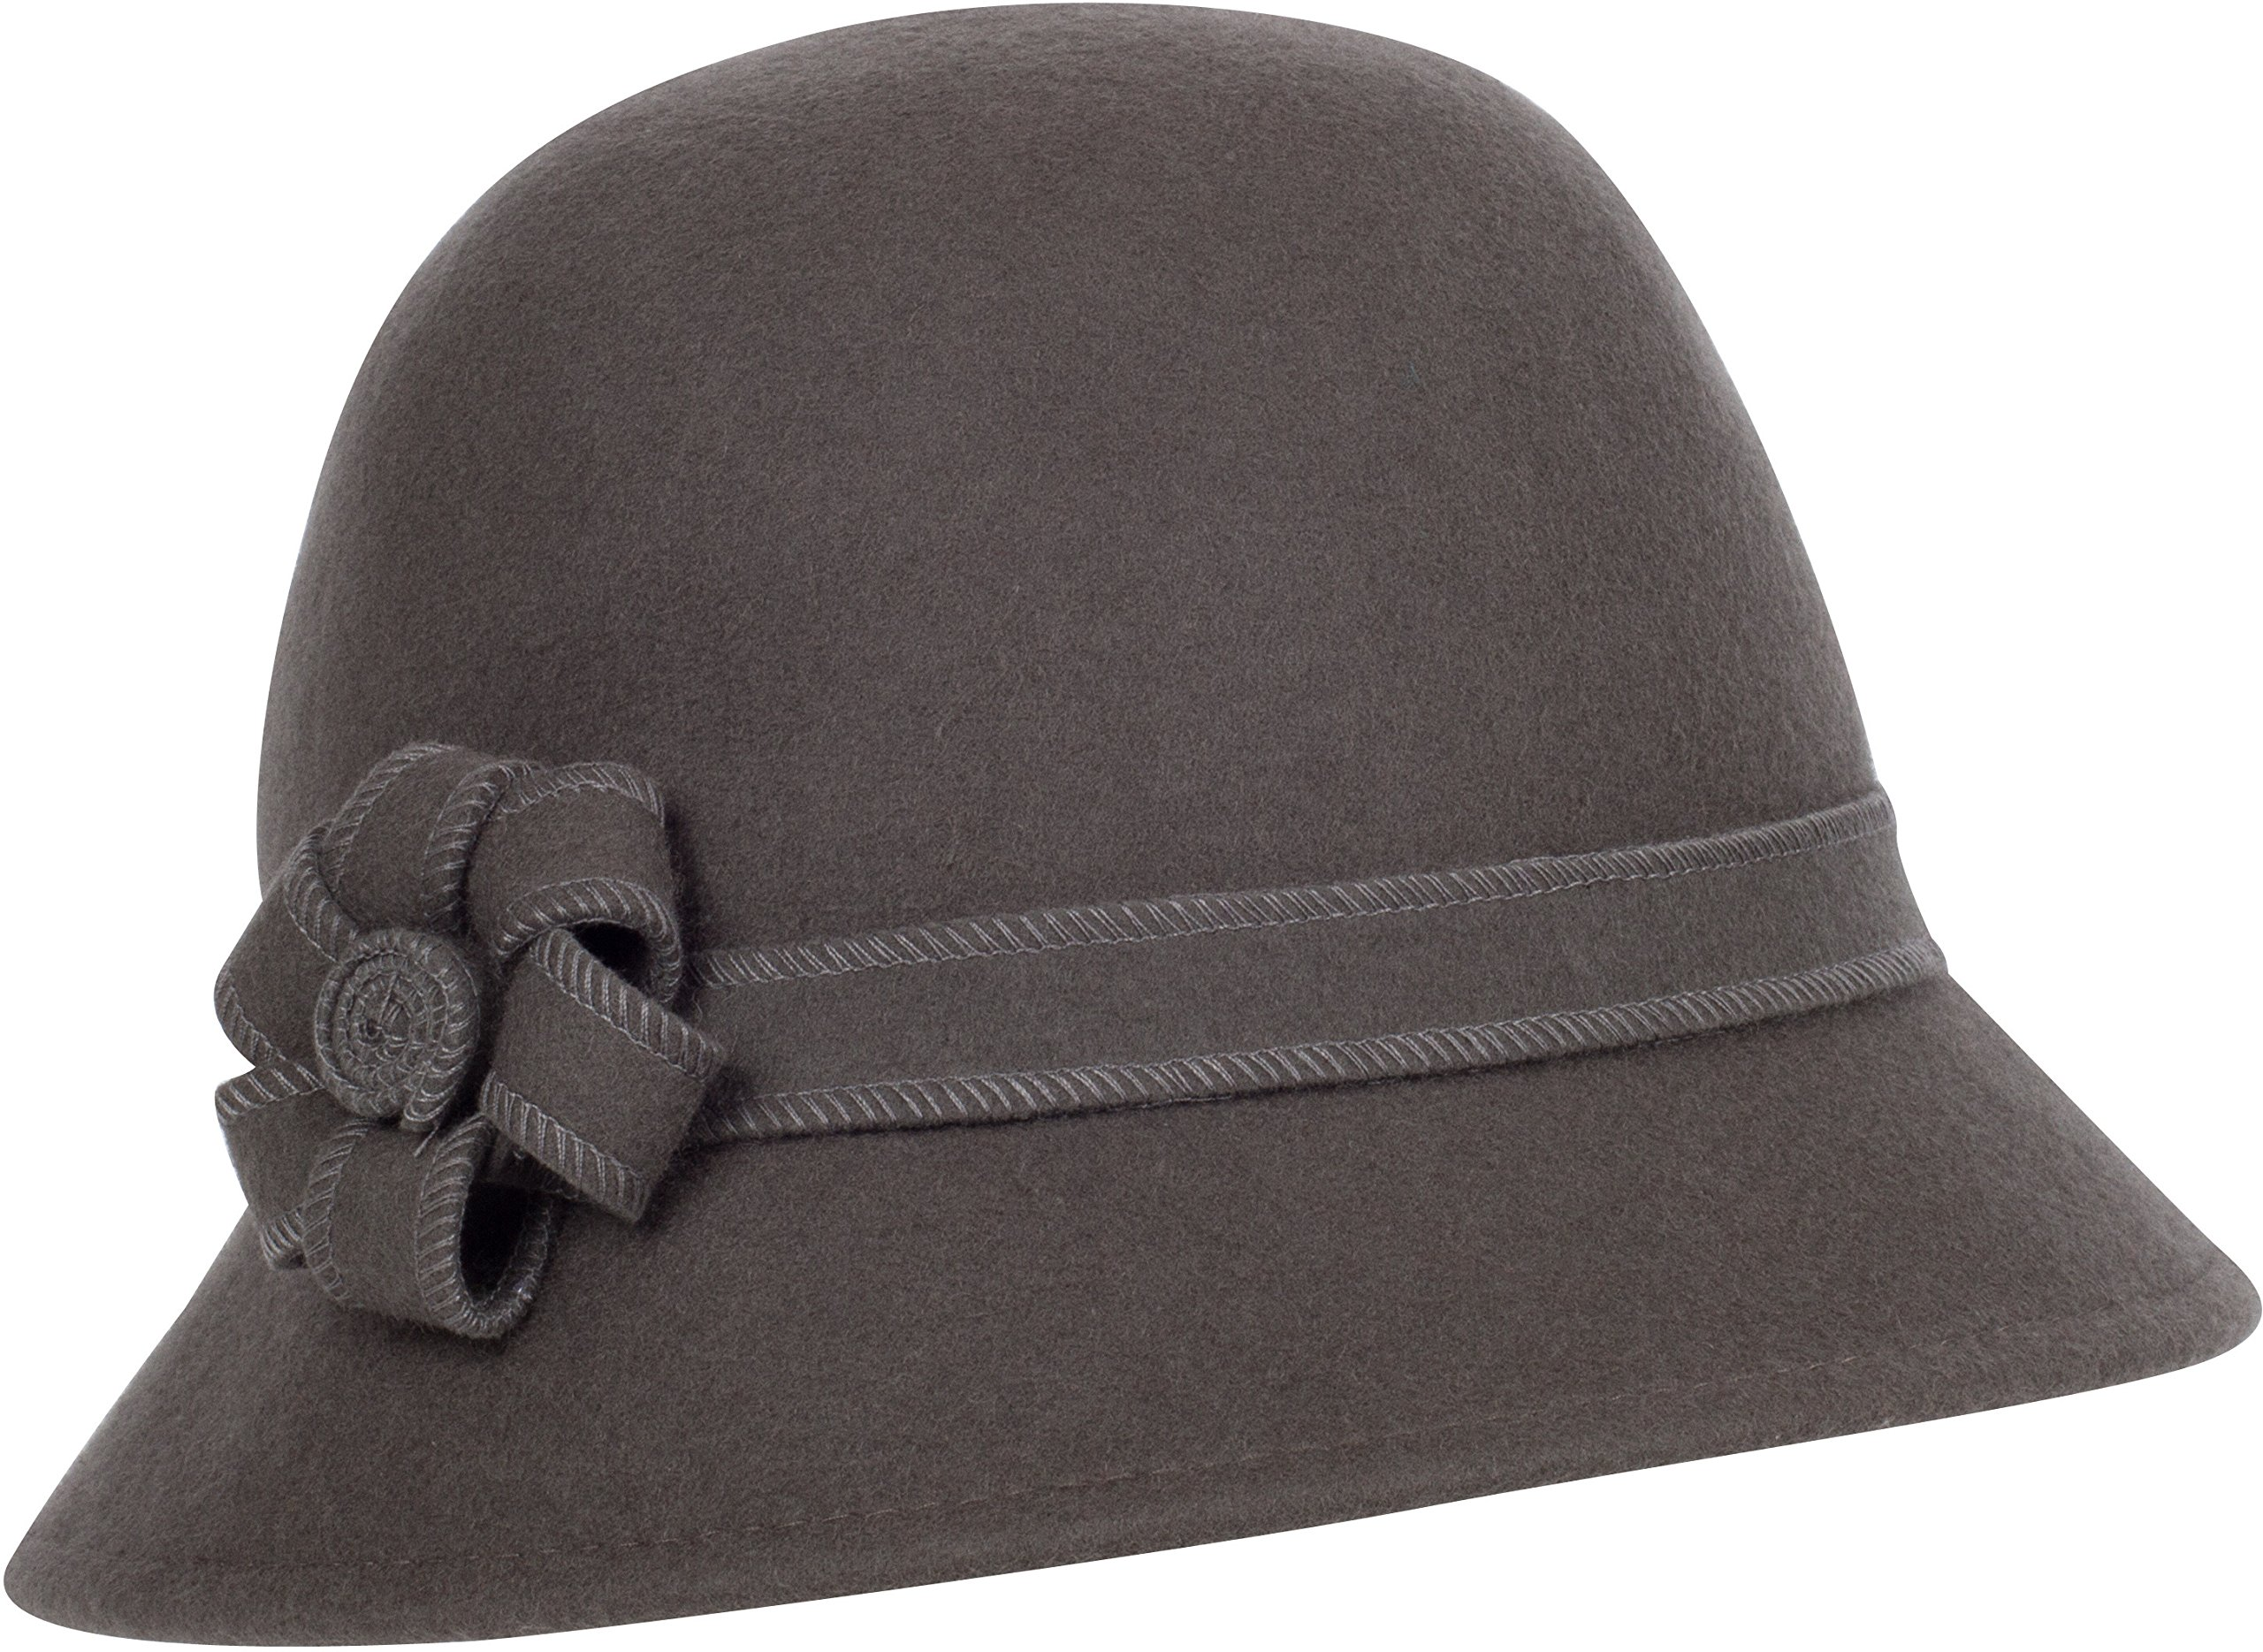 Sakkas 20M Molly Vintage Style Wool Cloche Hat - Taupe Grey - One Size by Sakkas